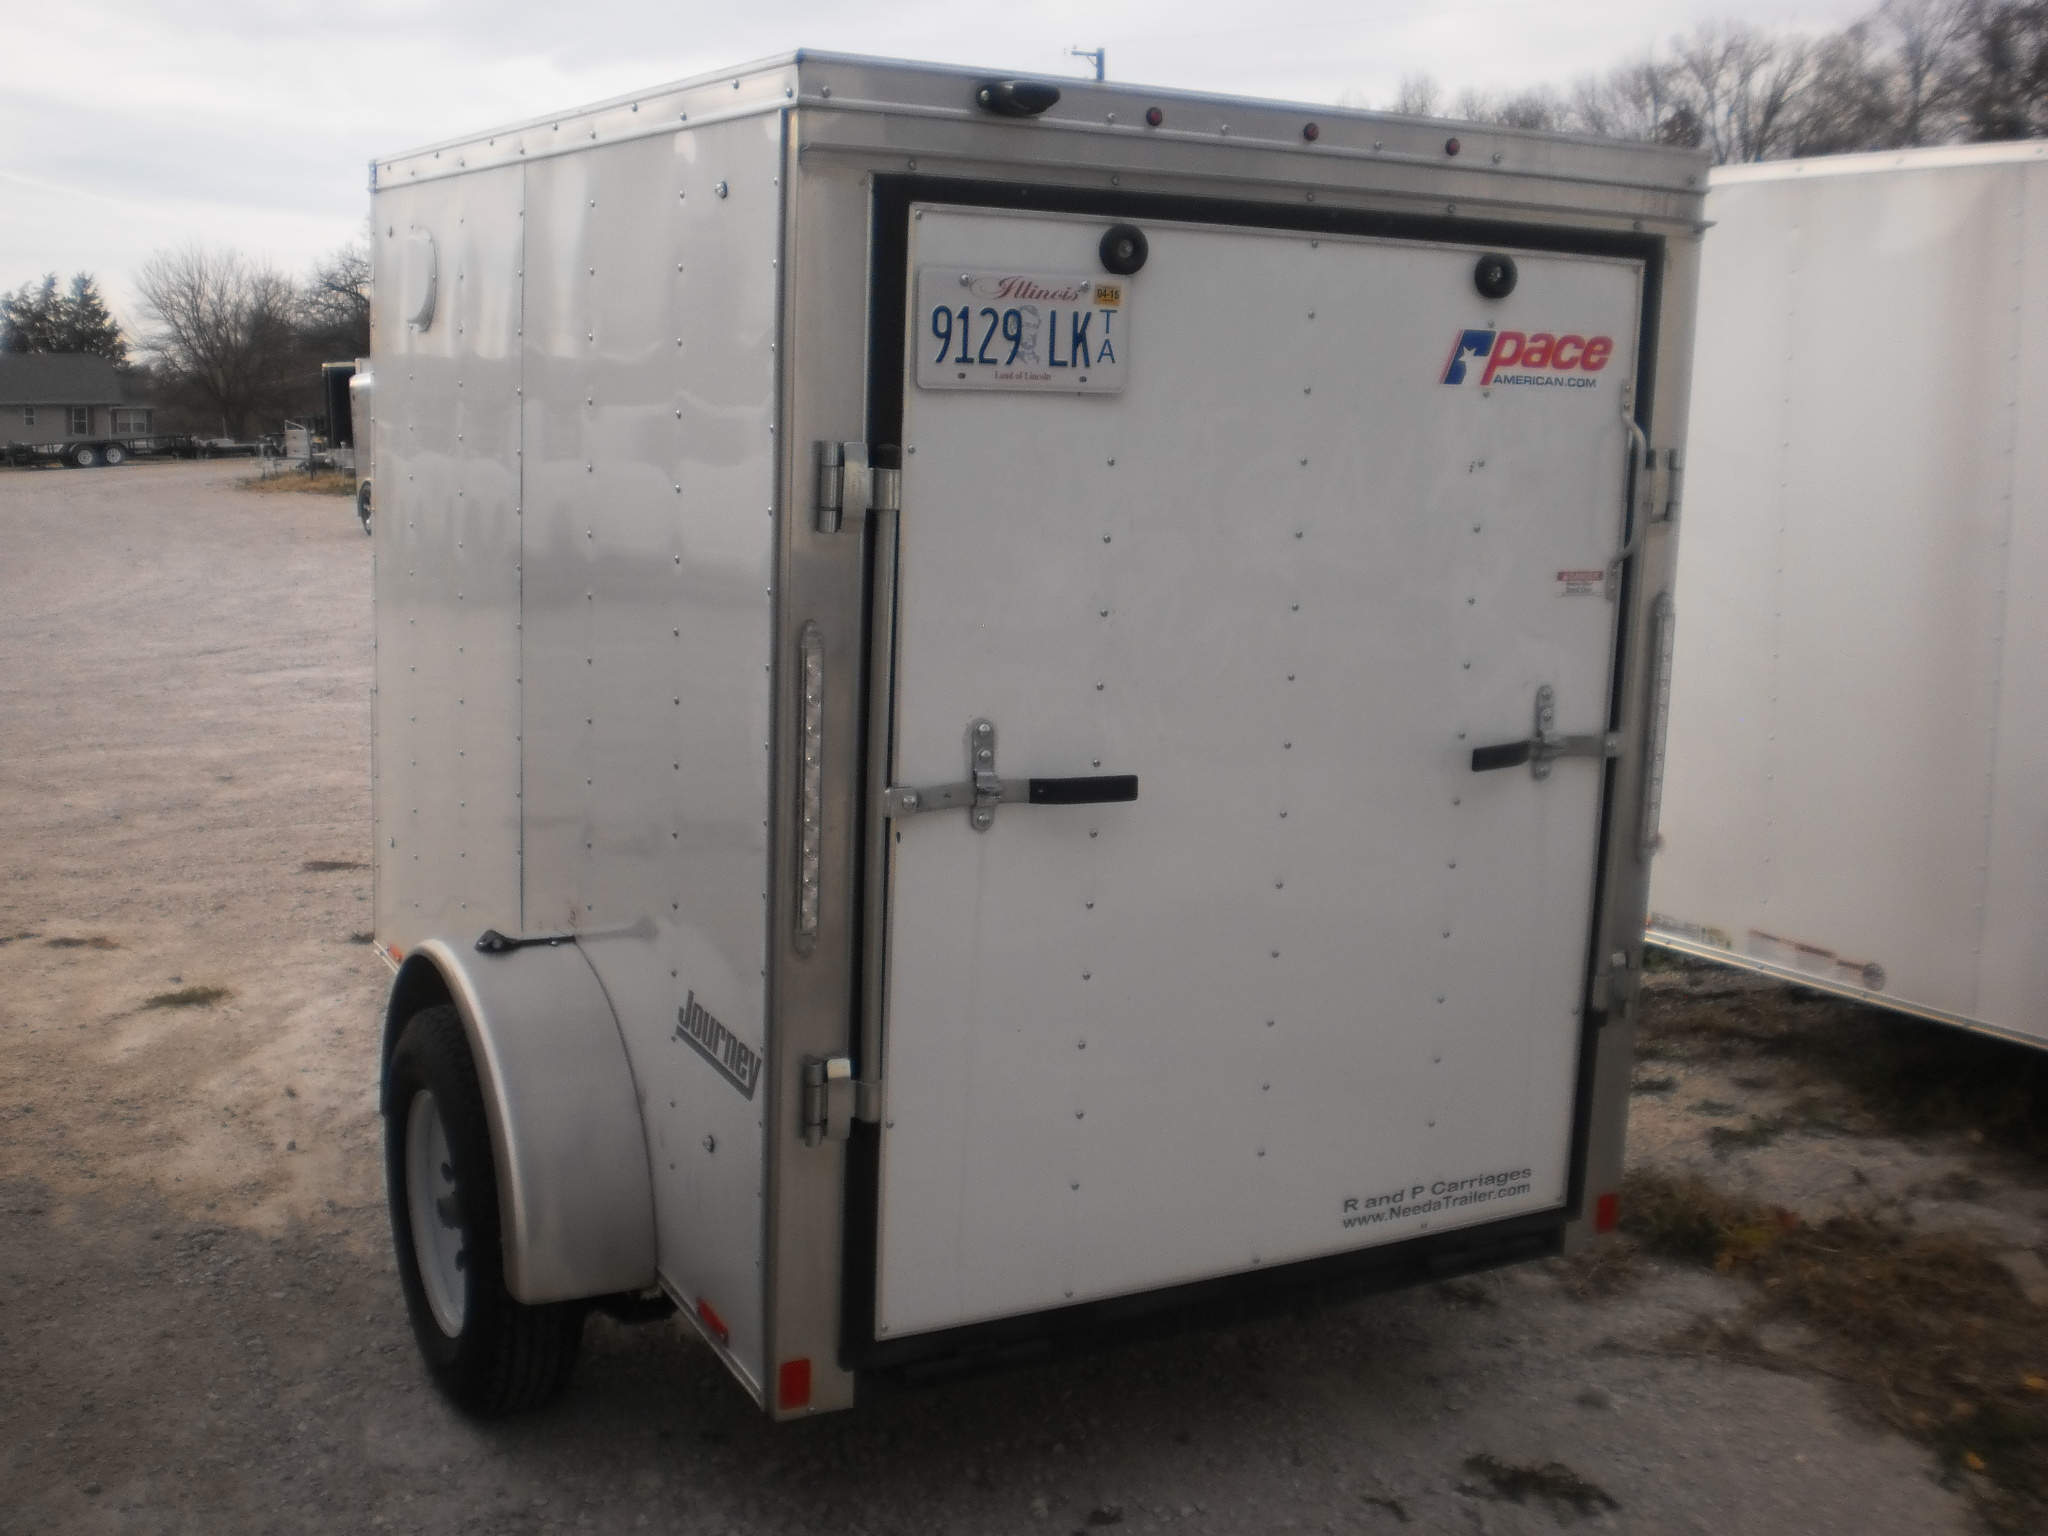 Rental trailers at r and p carriages 5 x 8 rental trailer sciox Choice Image